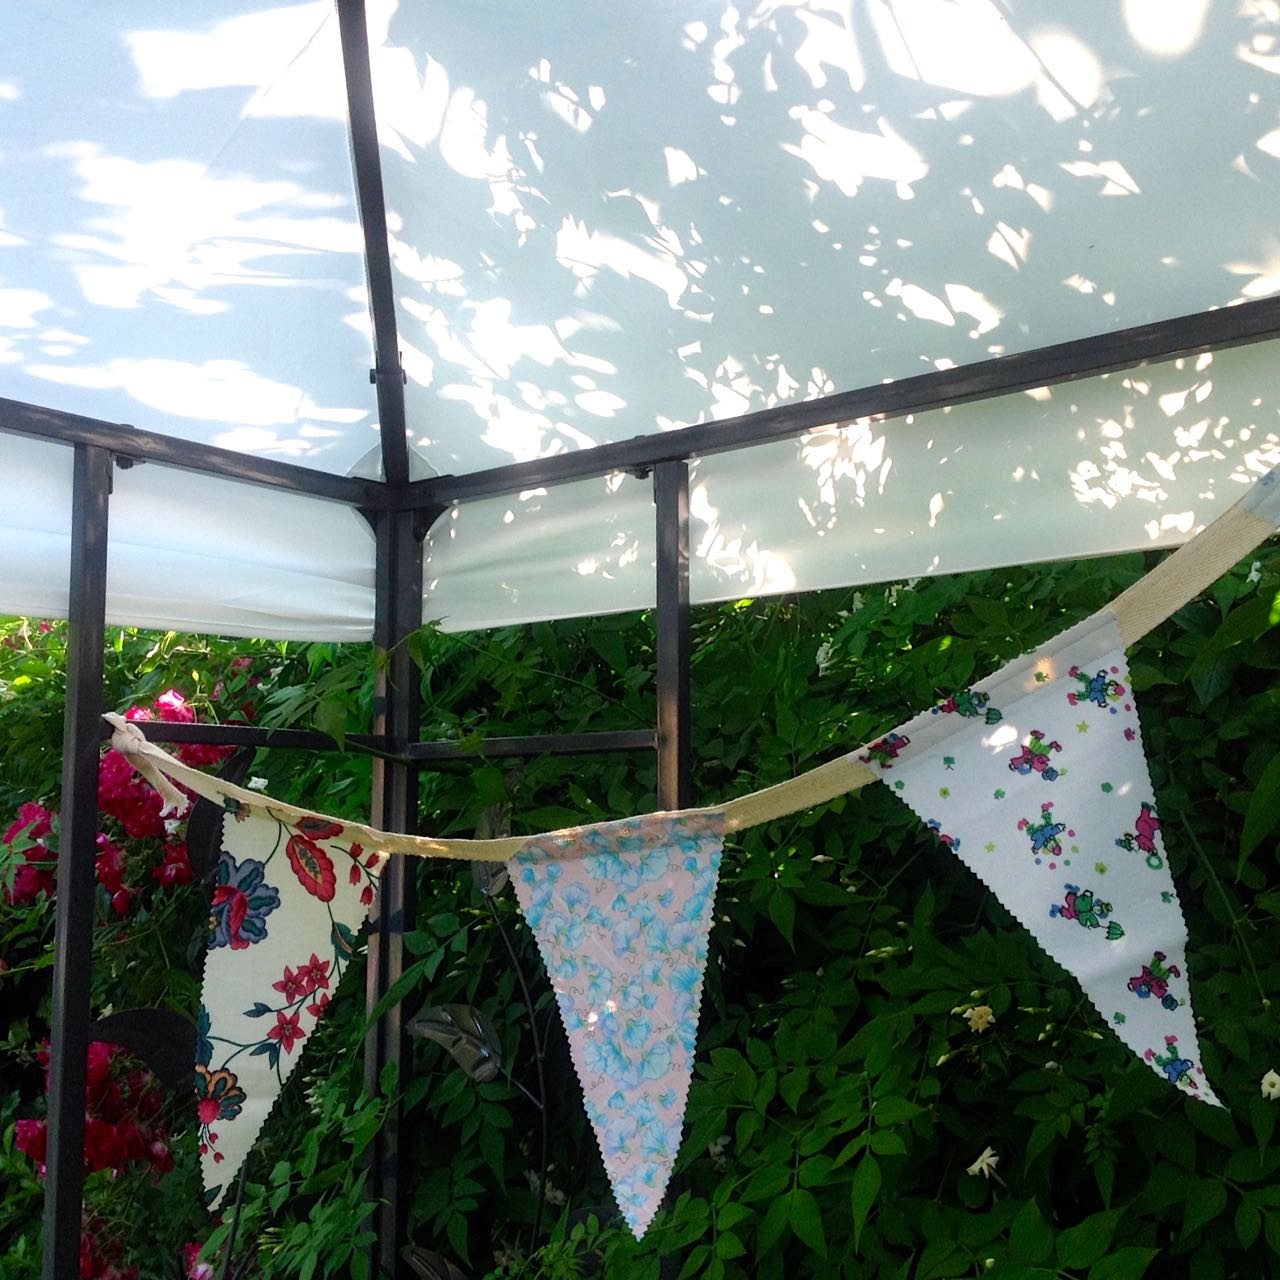 homemade bunting from scraps hanging in the gazebo